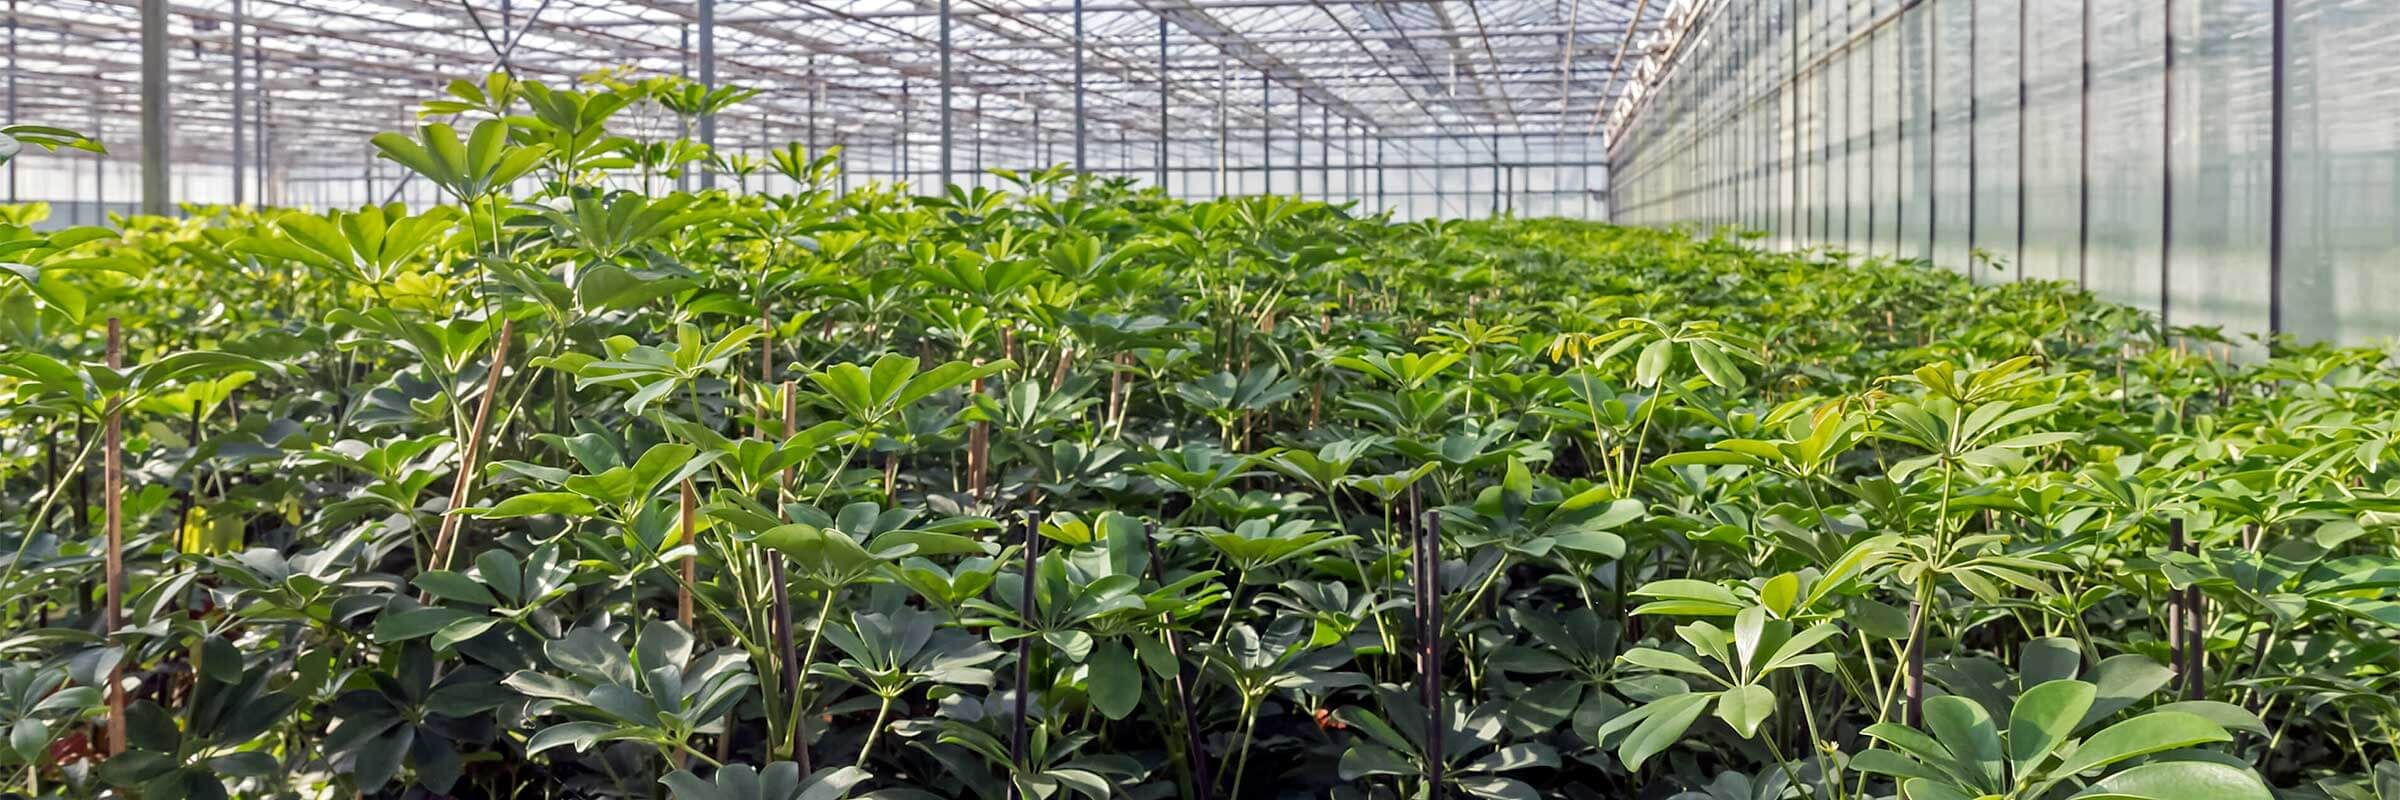 Photo: Umbrella plants (Schefflera arboricola) in glass greenhouse Plant Nursery Oranjevliet.